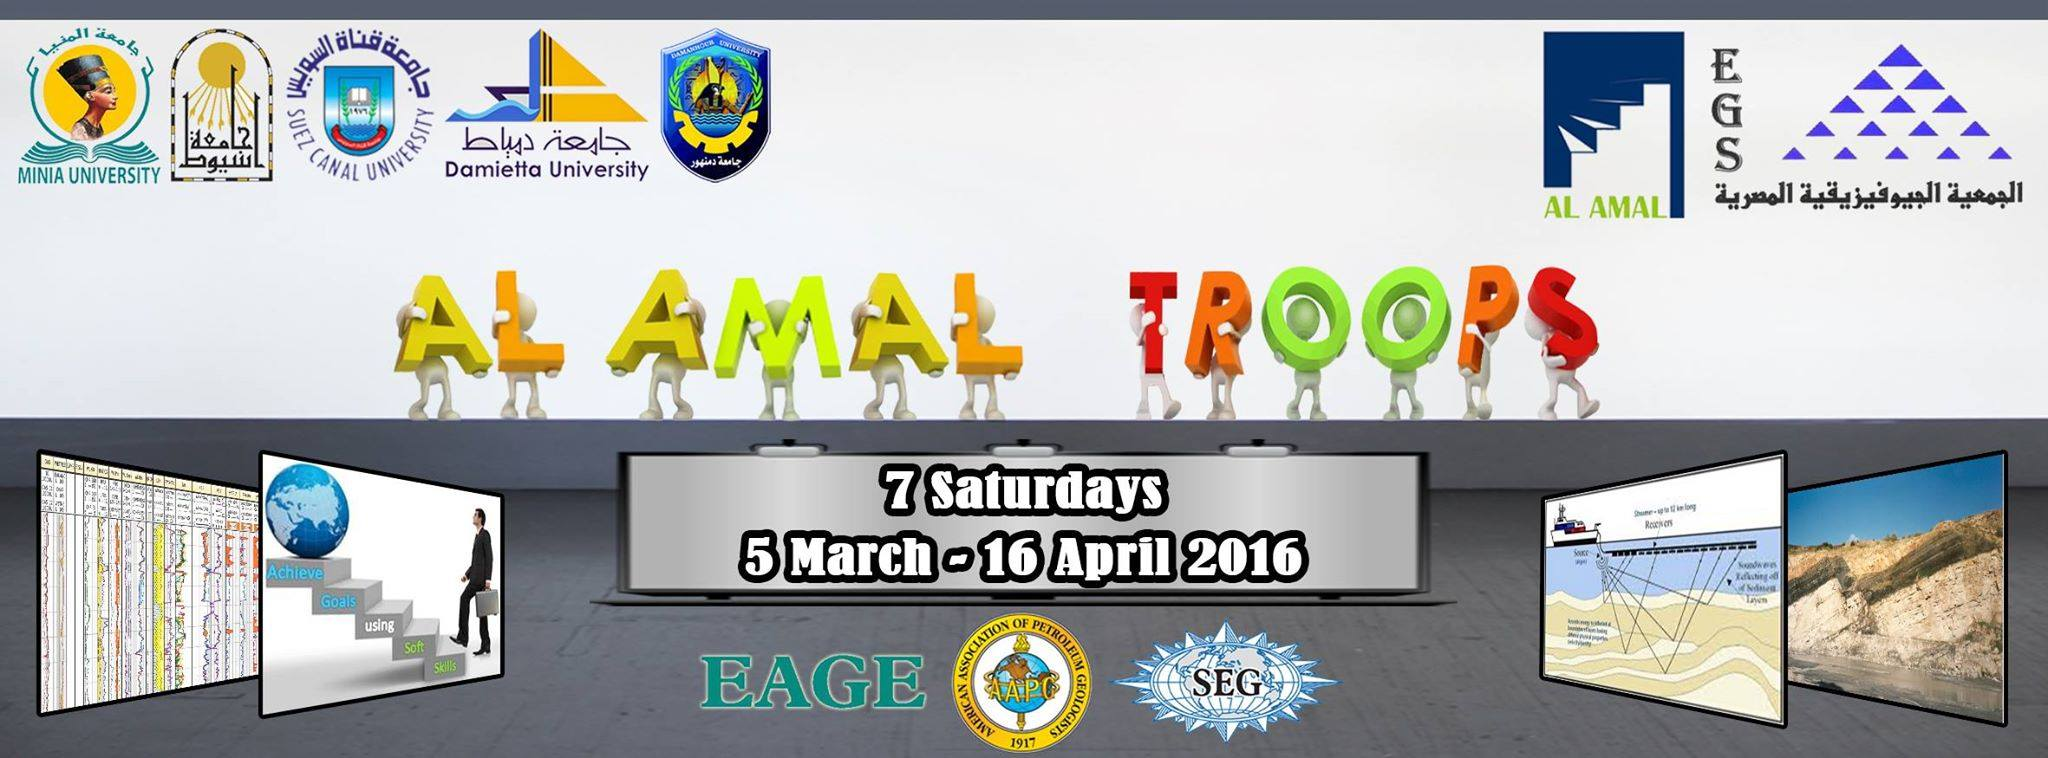 Amalianz learning programs (Gain & Give –  Al Amal Troops)